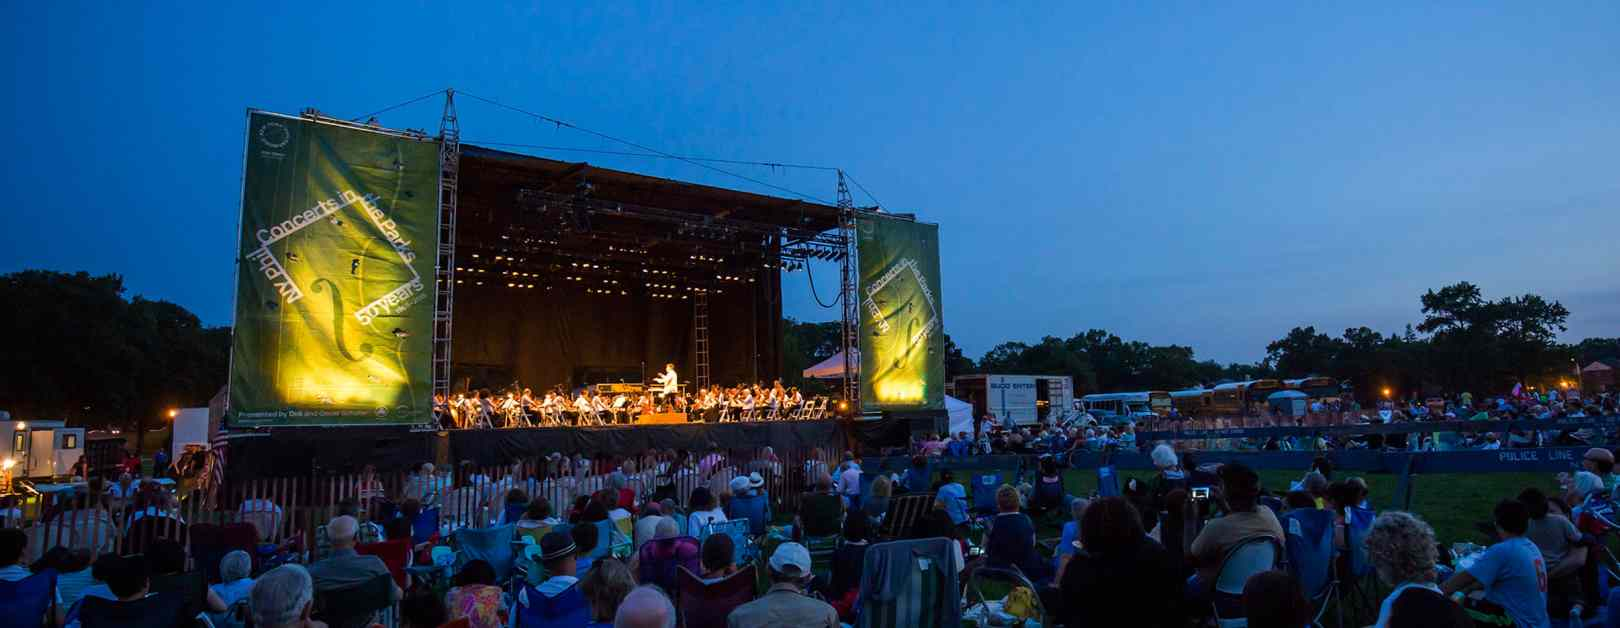 Concerts in the Parks – Cunningham Park